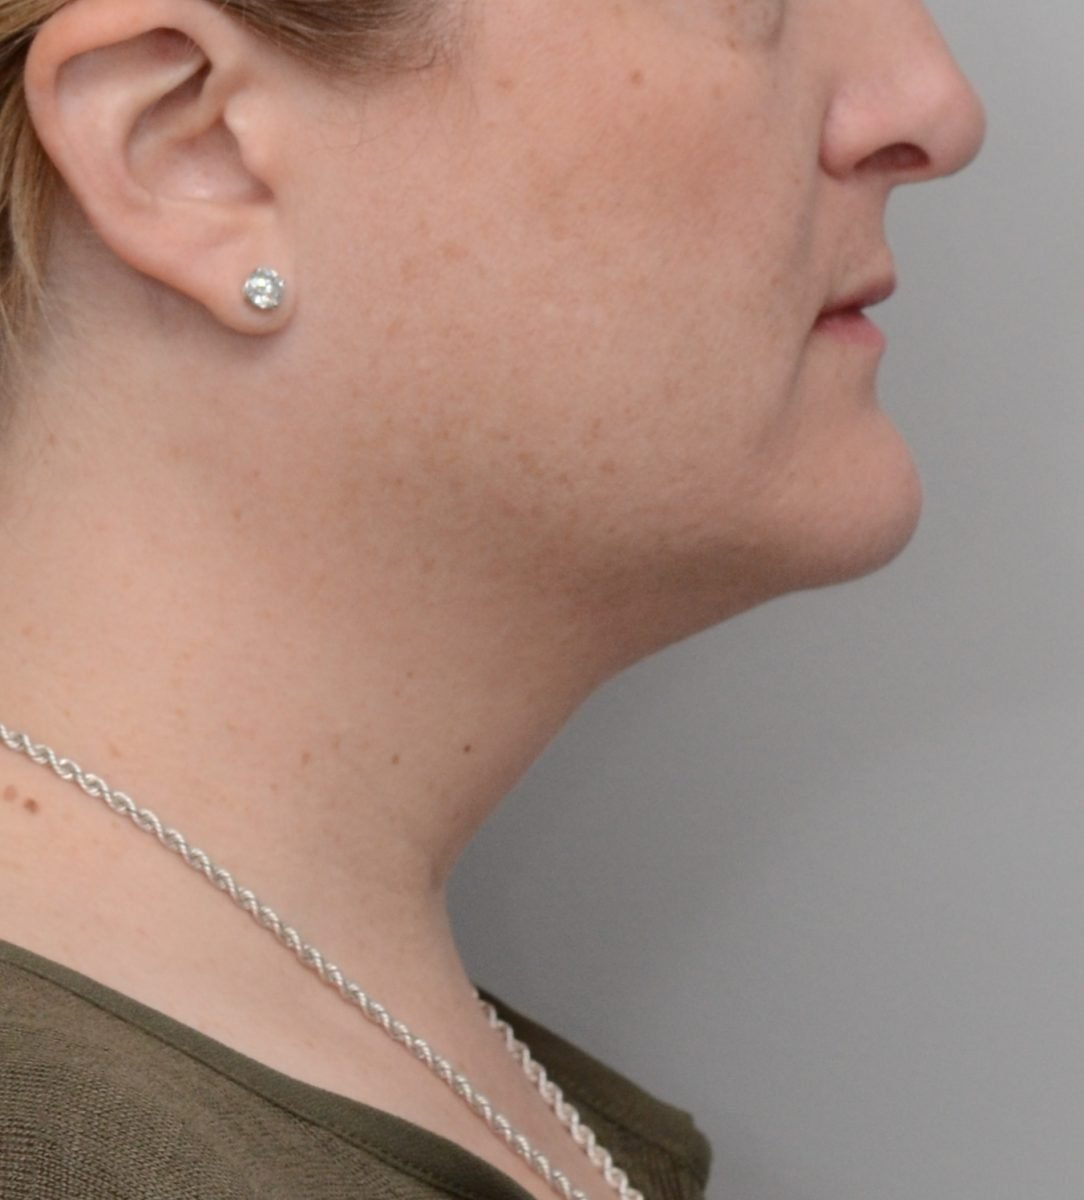 Patient picture before Kybella at Nuance Facial Plastics